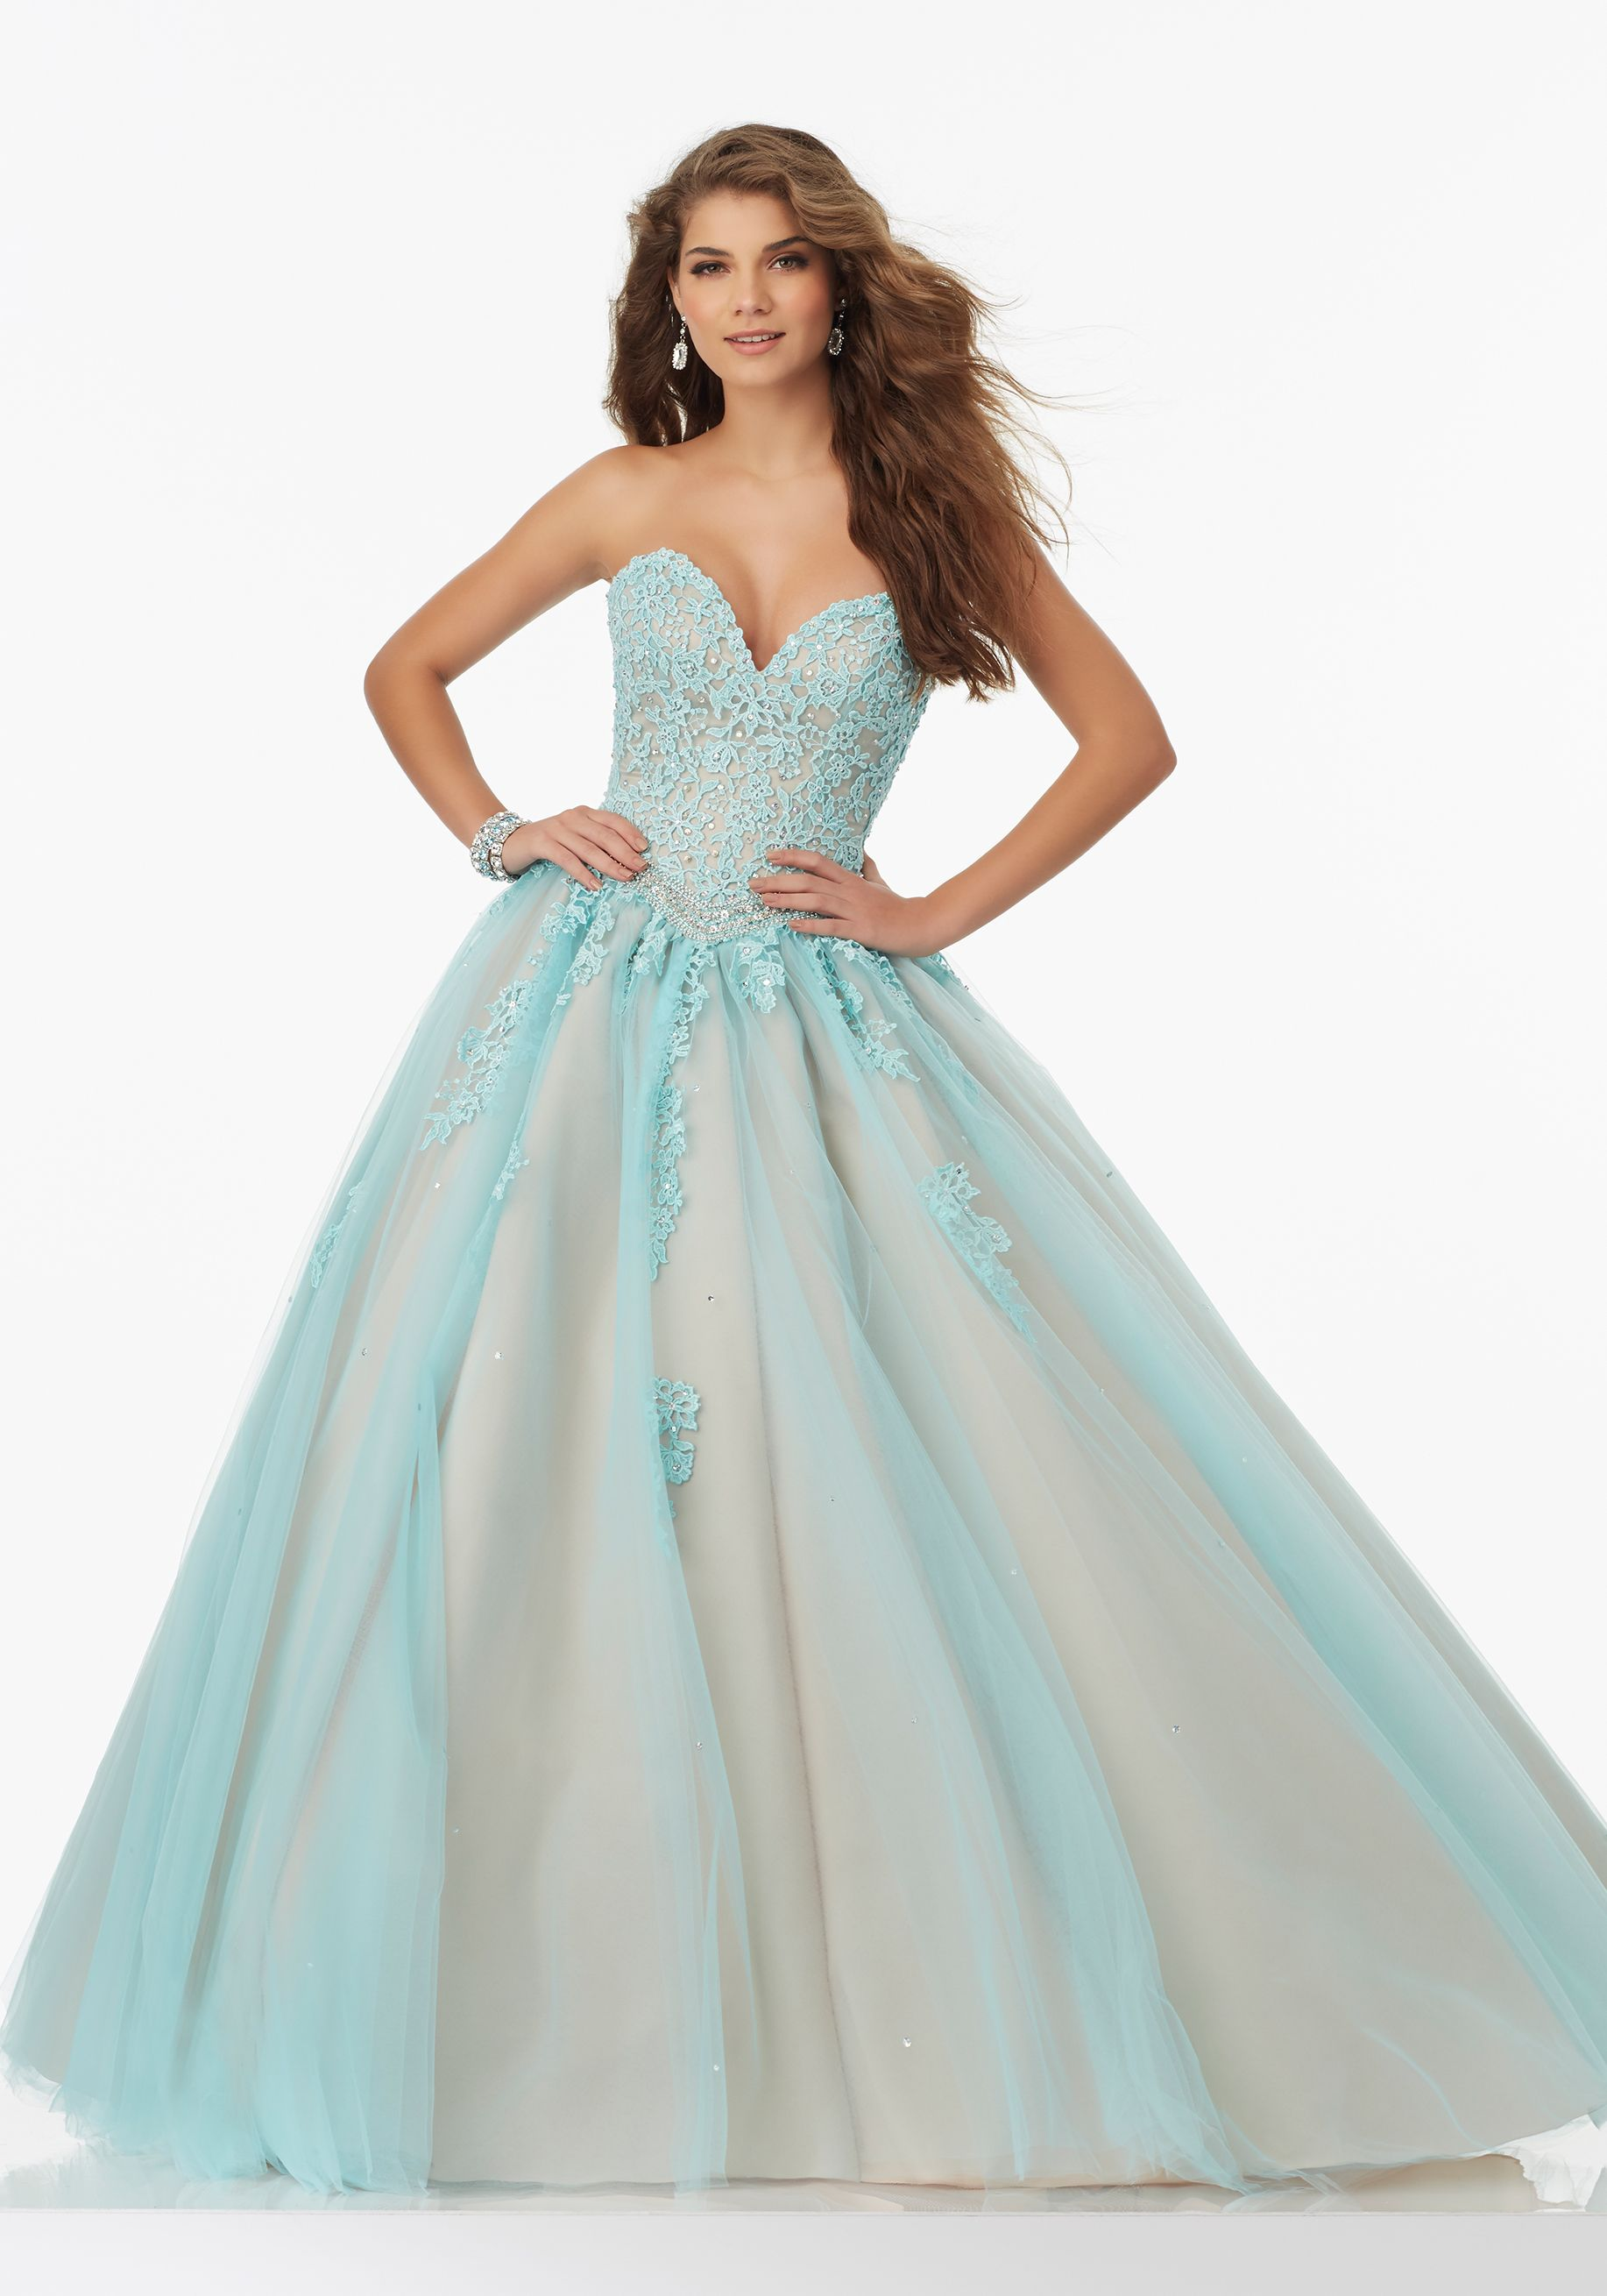 Prom Ballgown with Beaded Lace Sweetheart Bodice and Tulle Skirt ...